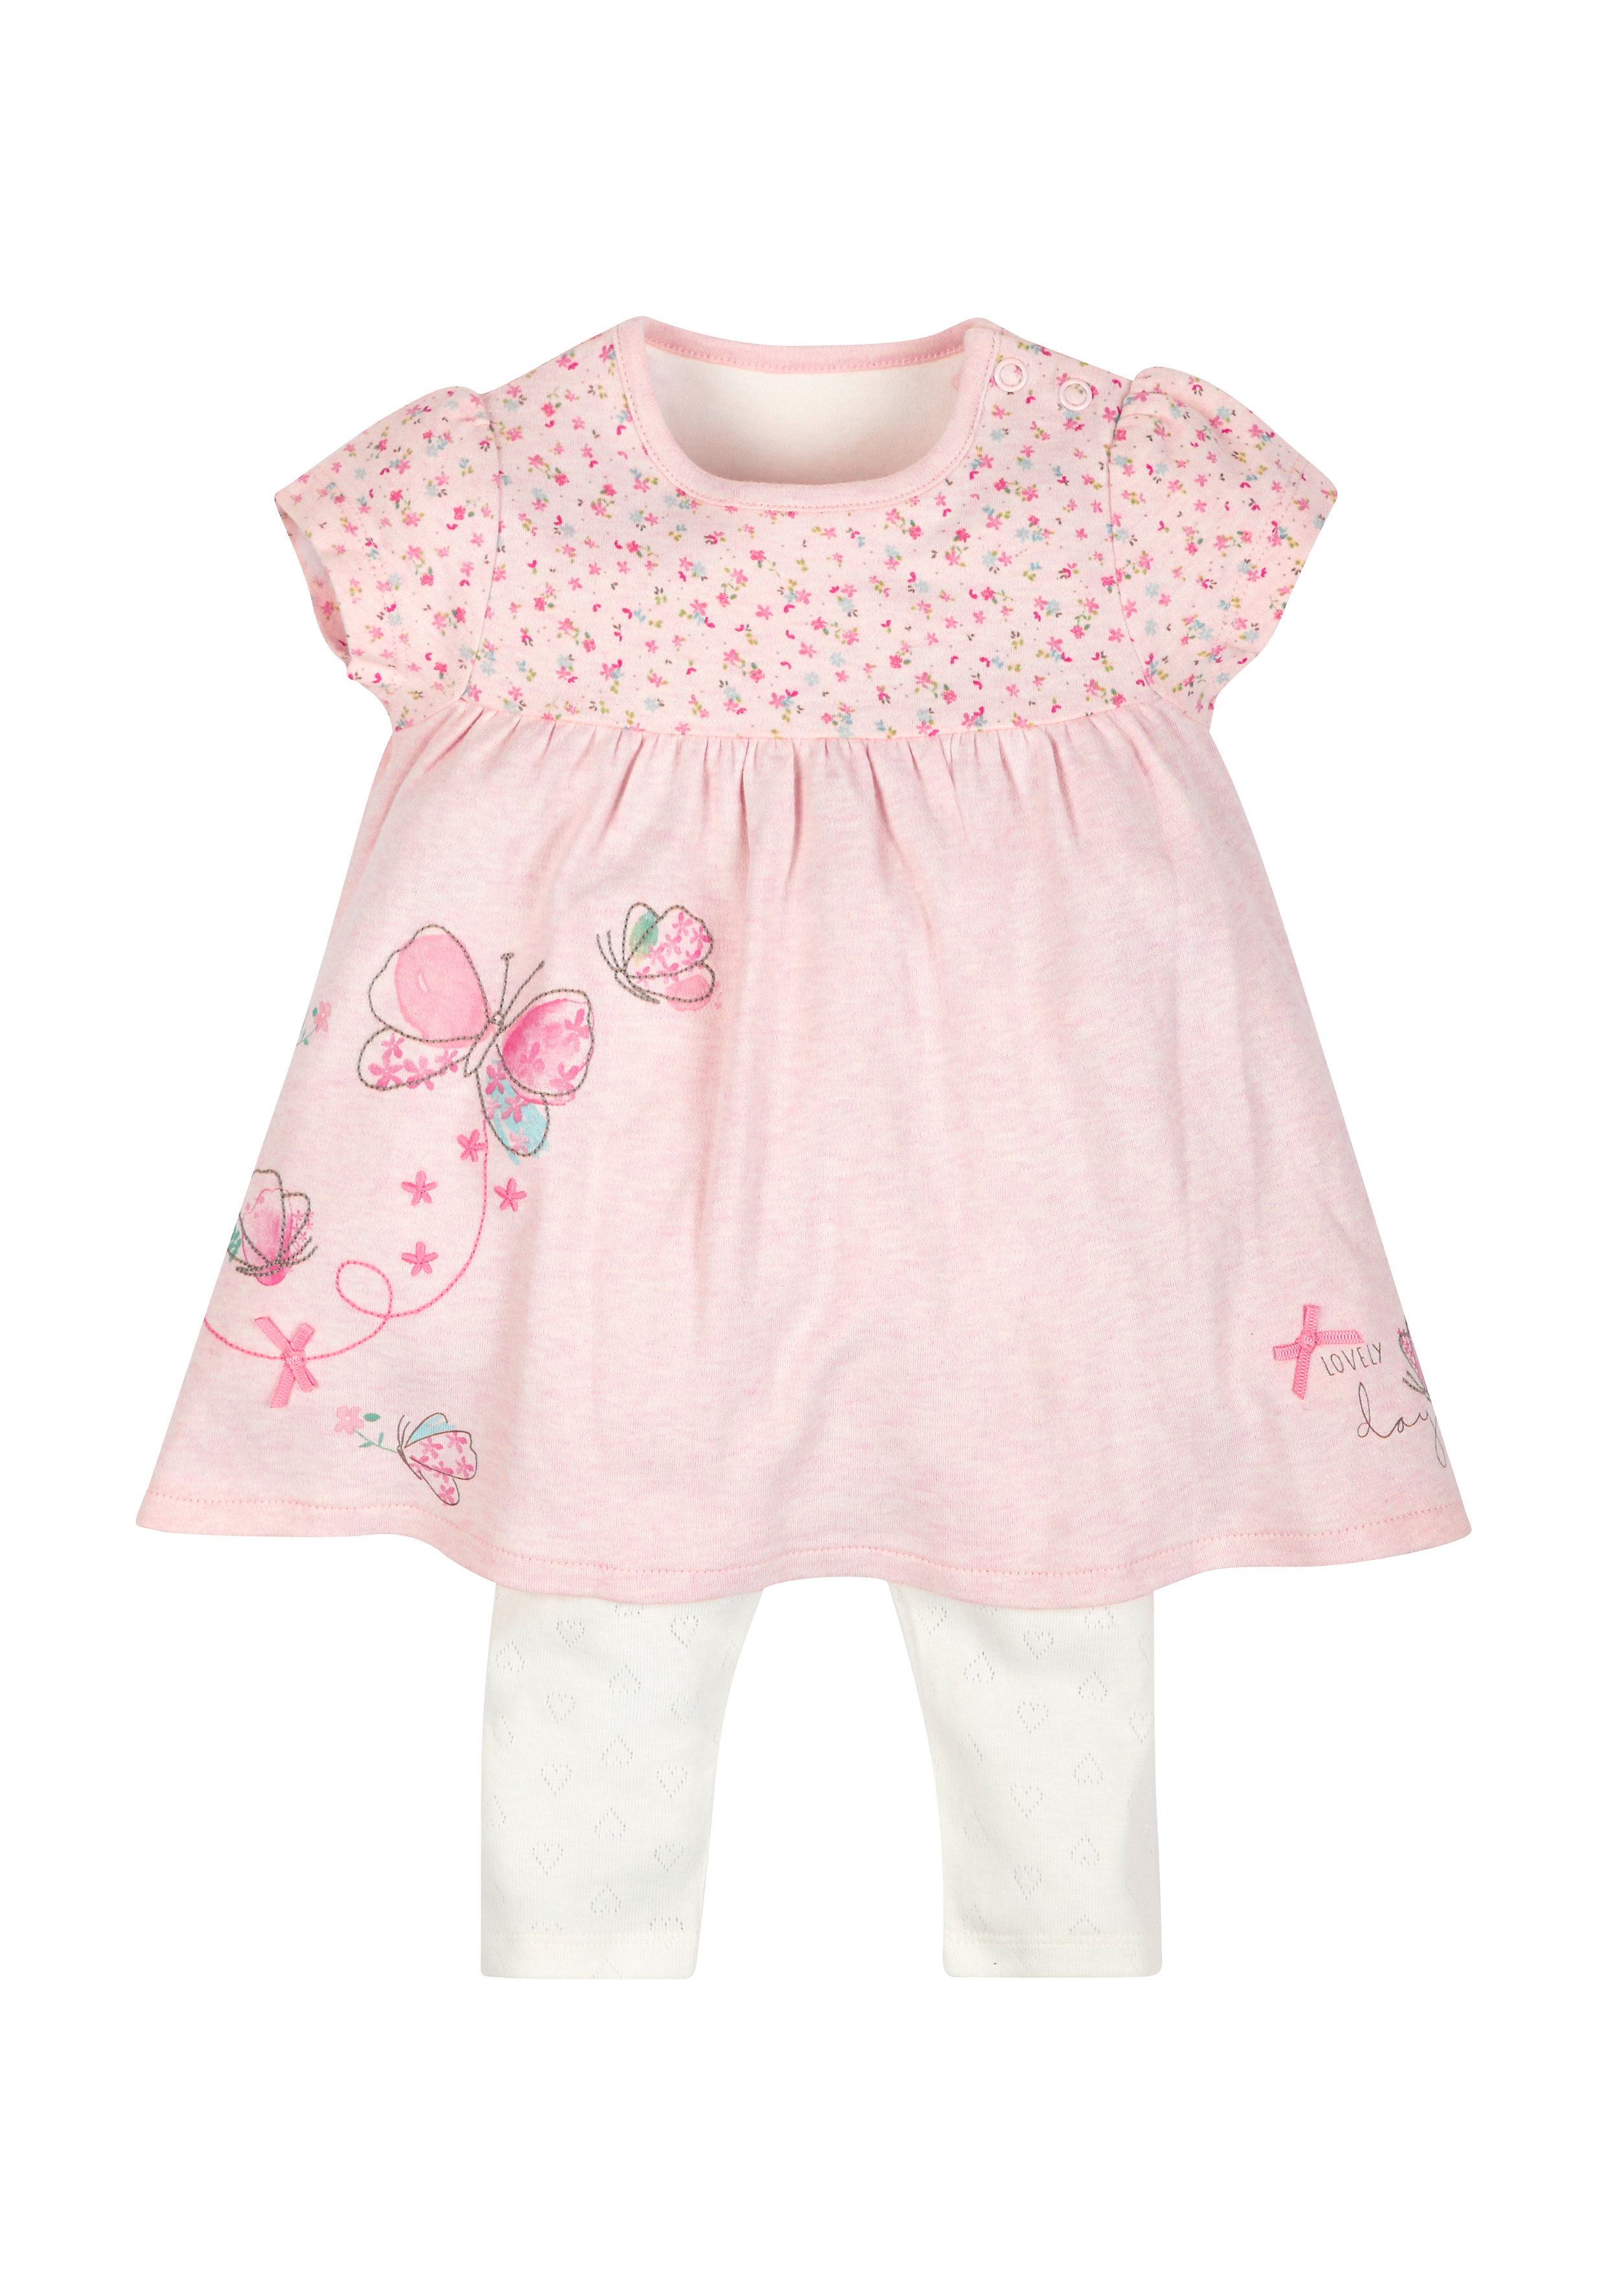 Mothercare | Girls Lovely Day Dress And Leggings Set - Pink